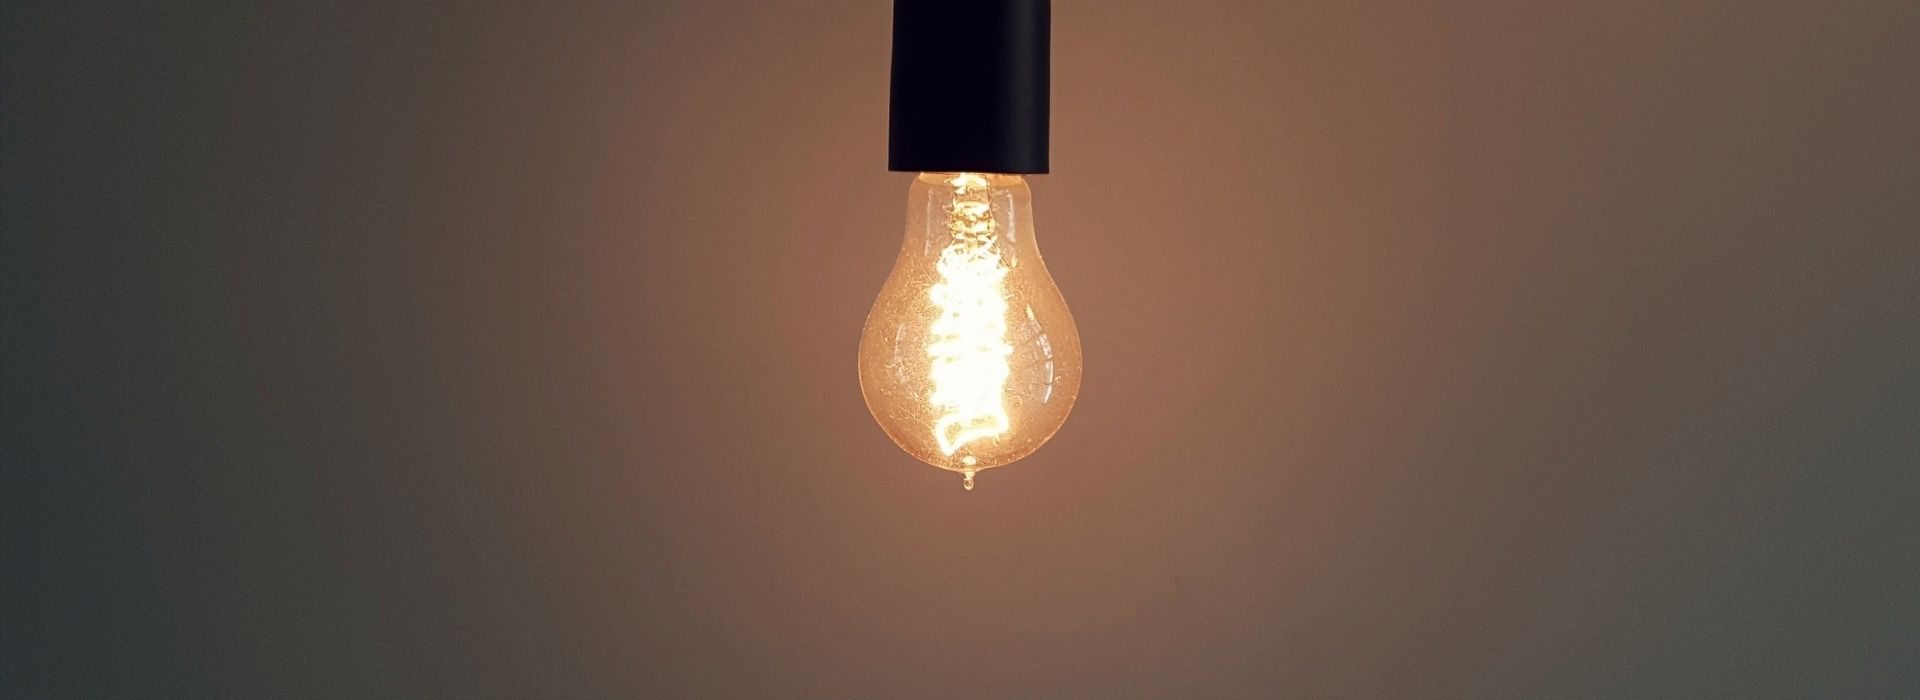 investing in Cyprus light bulb